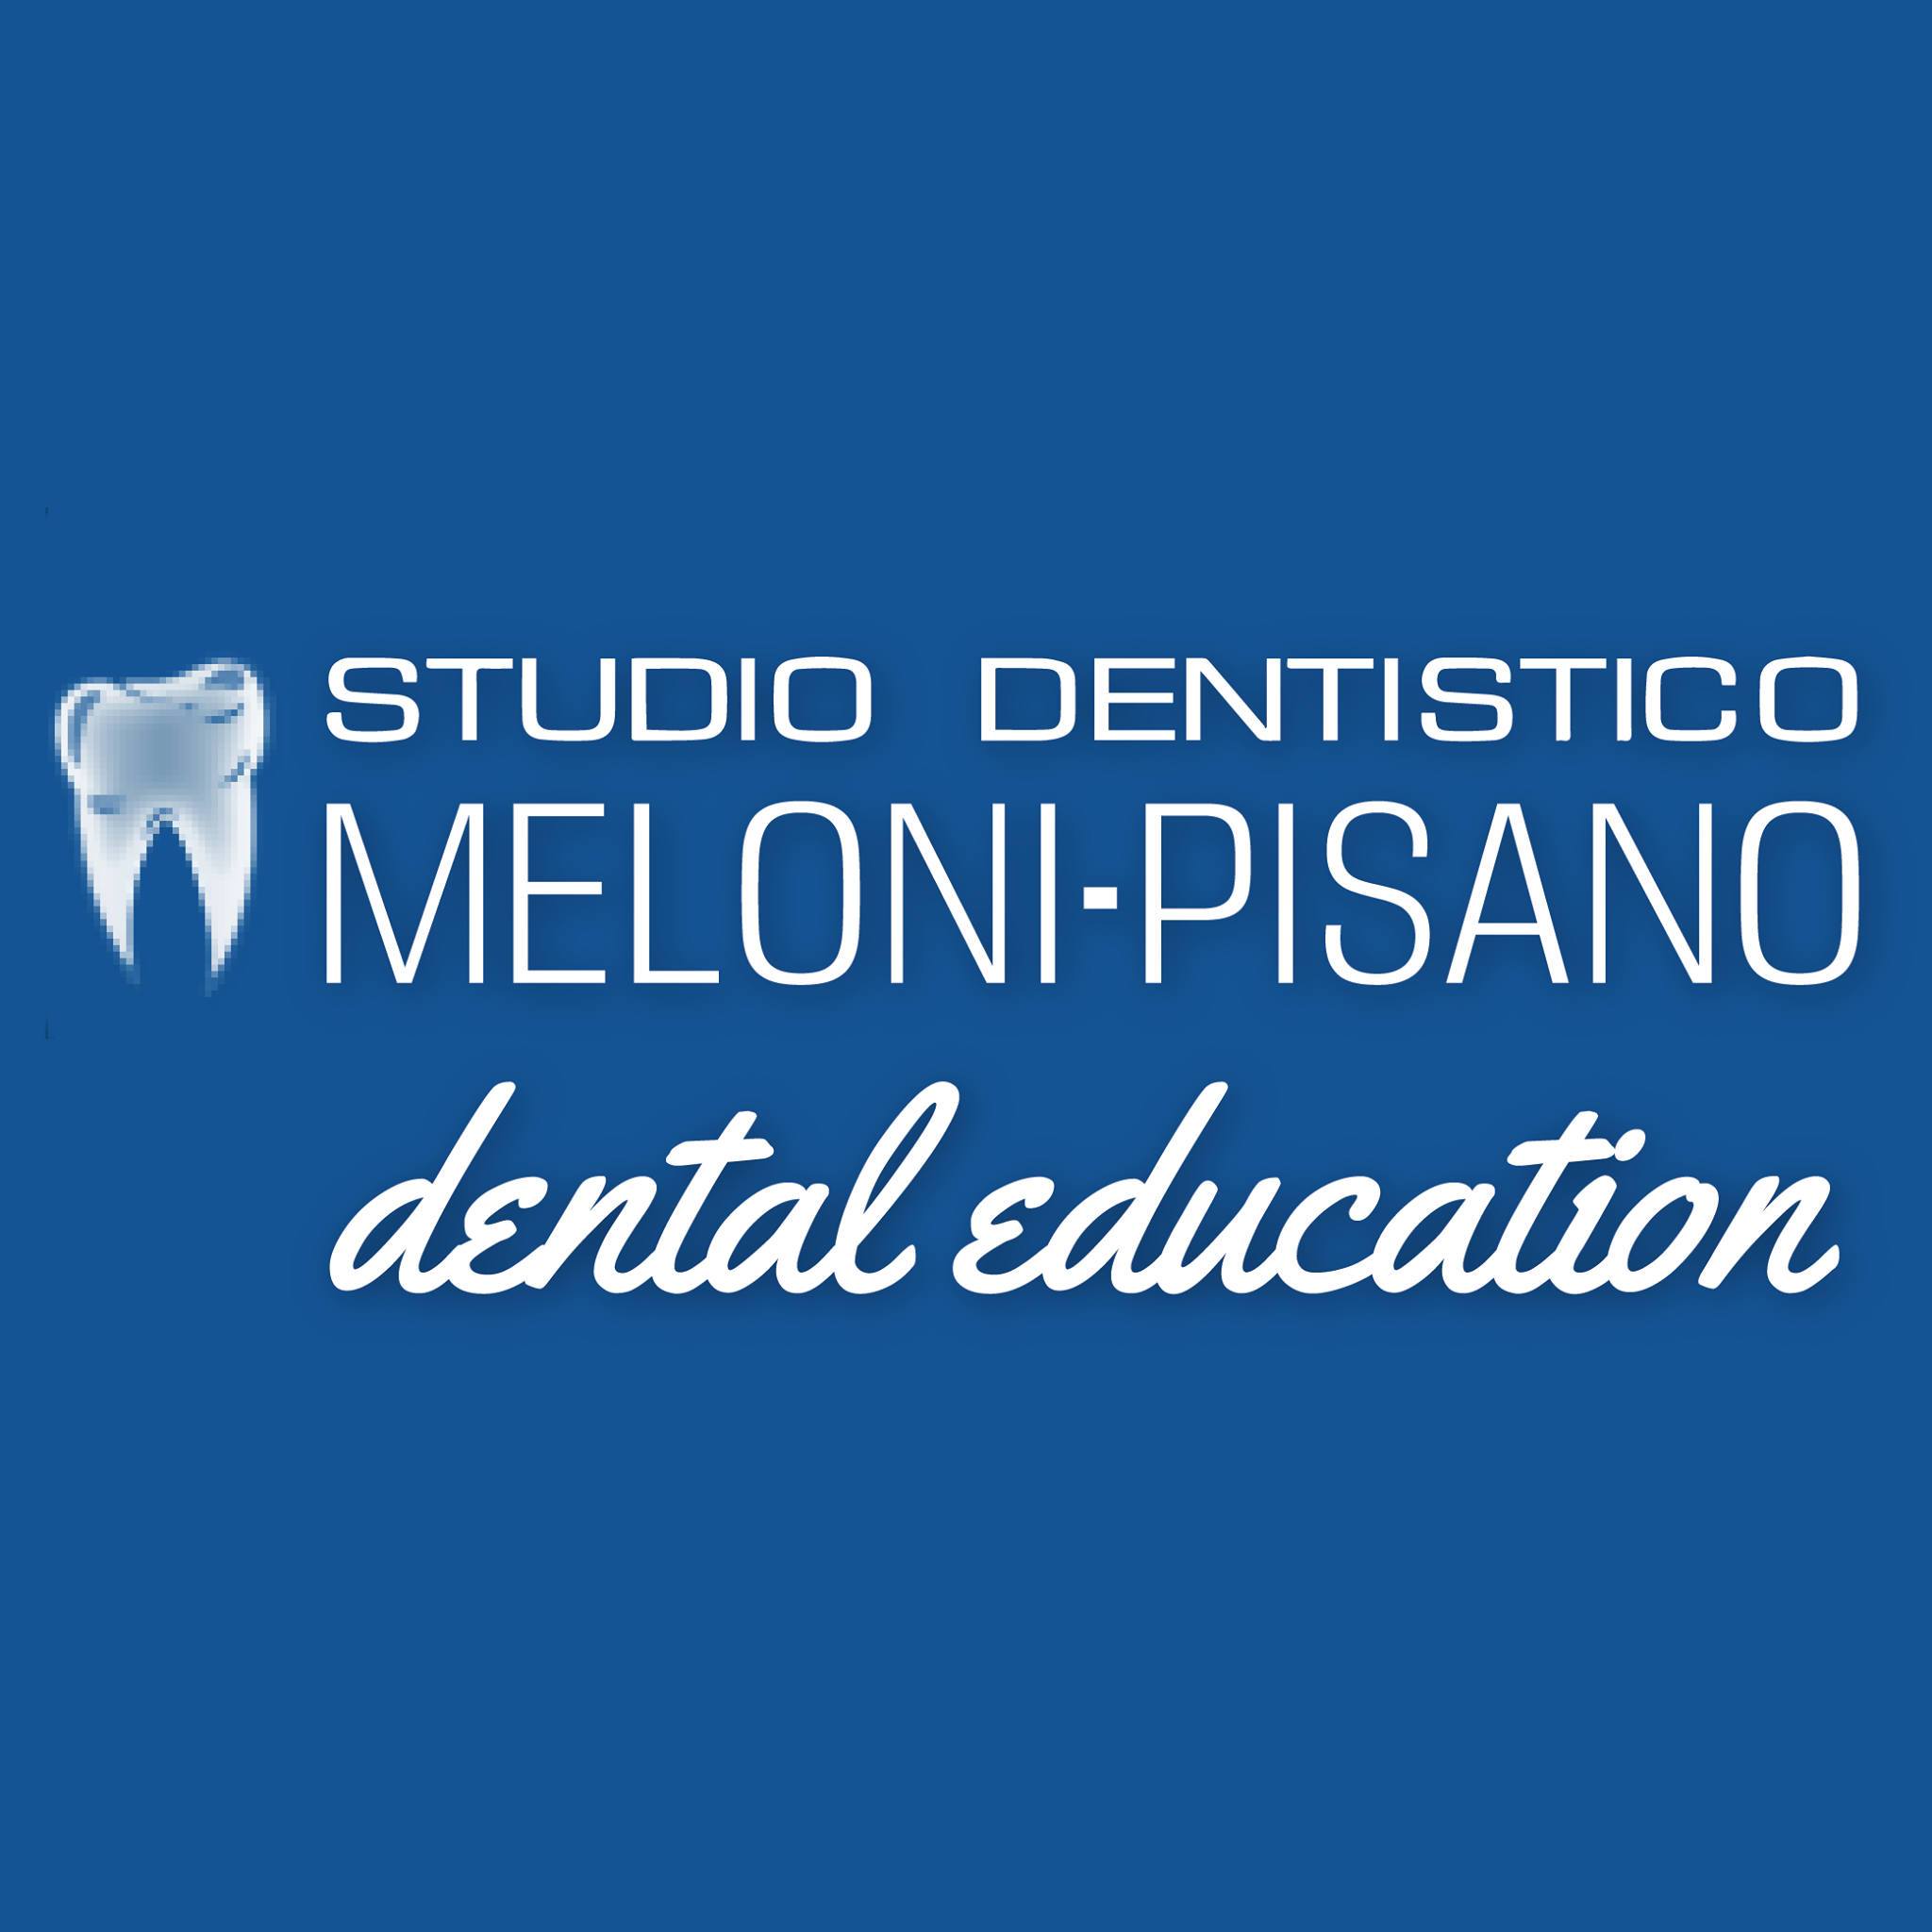 Studio Dentistico Meloni Pisano Dental Education Logo